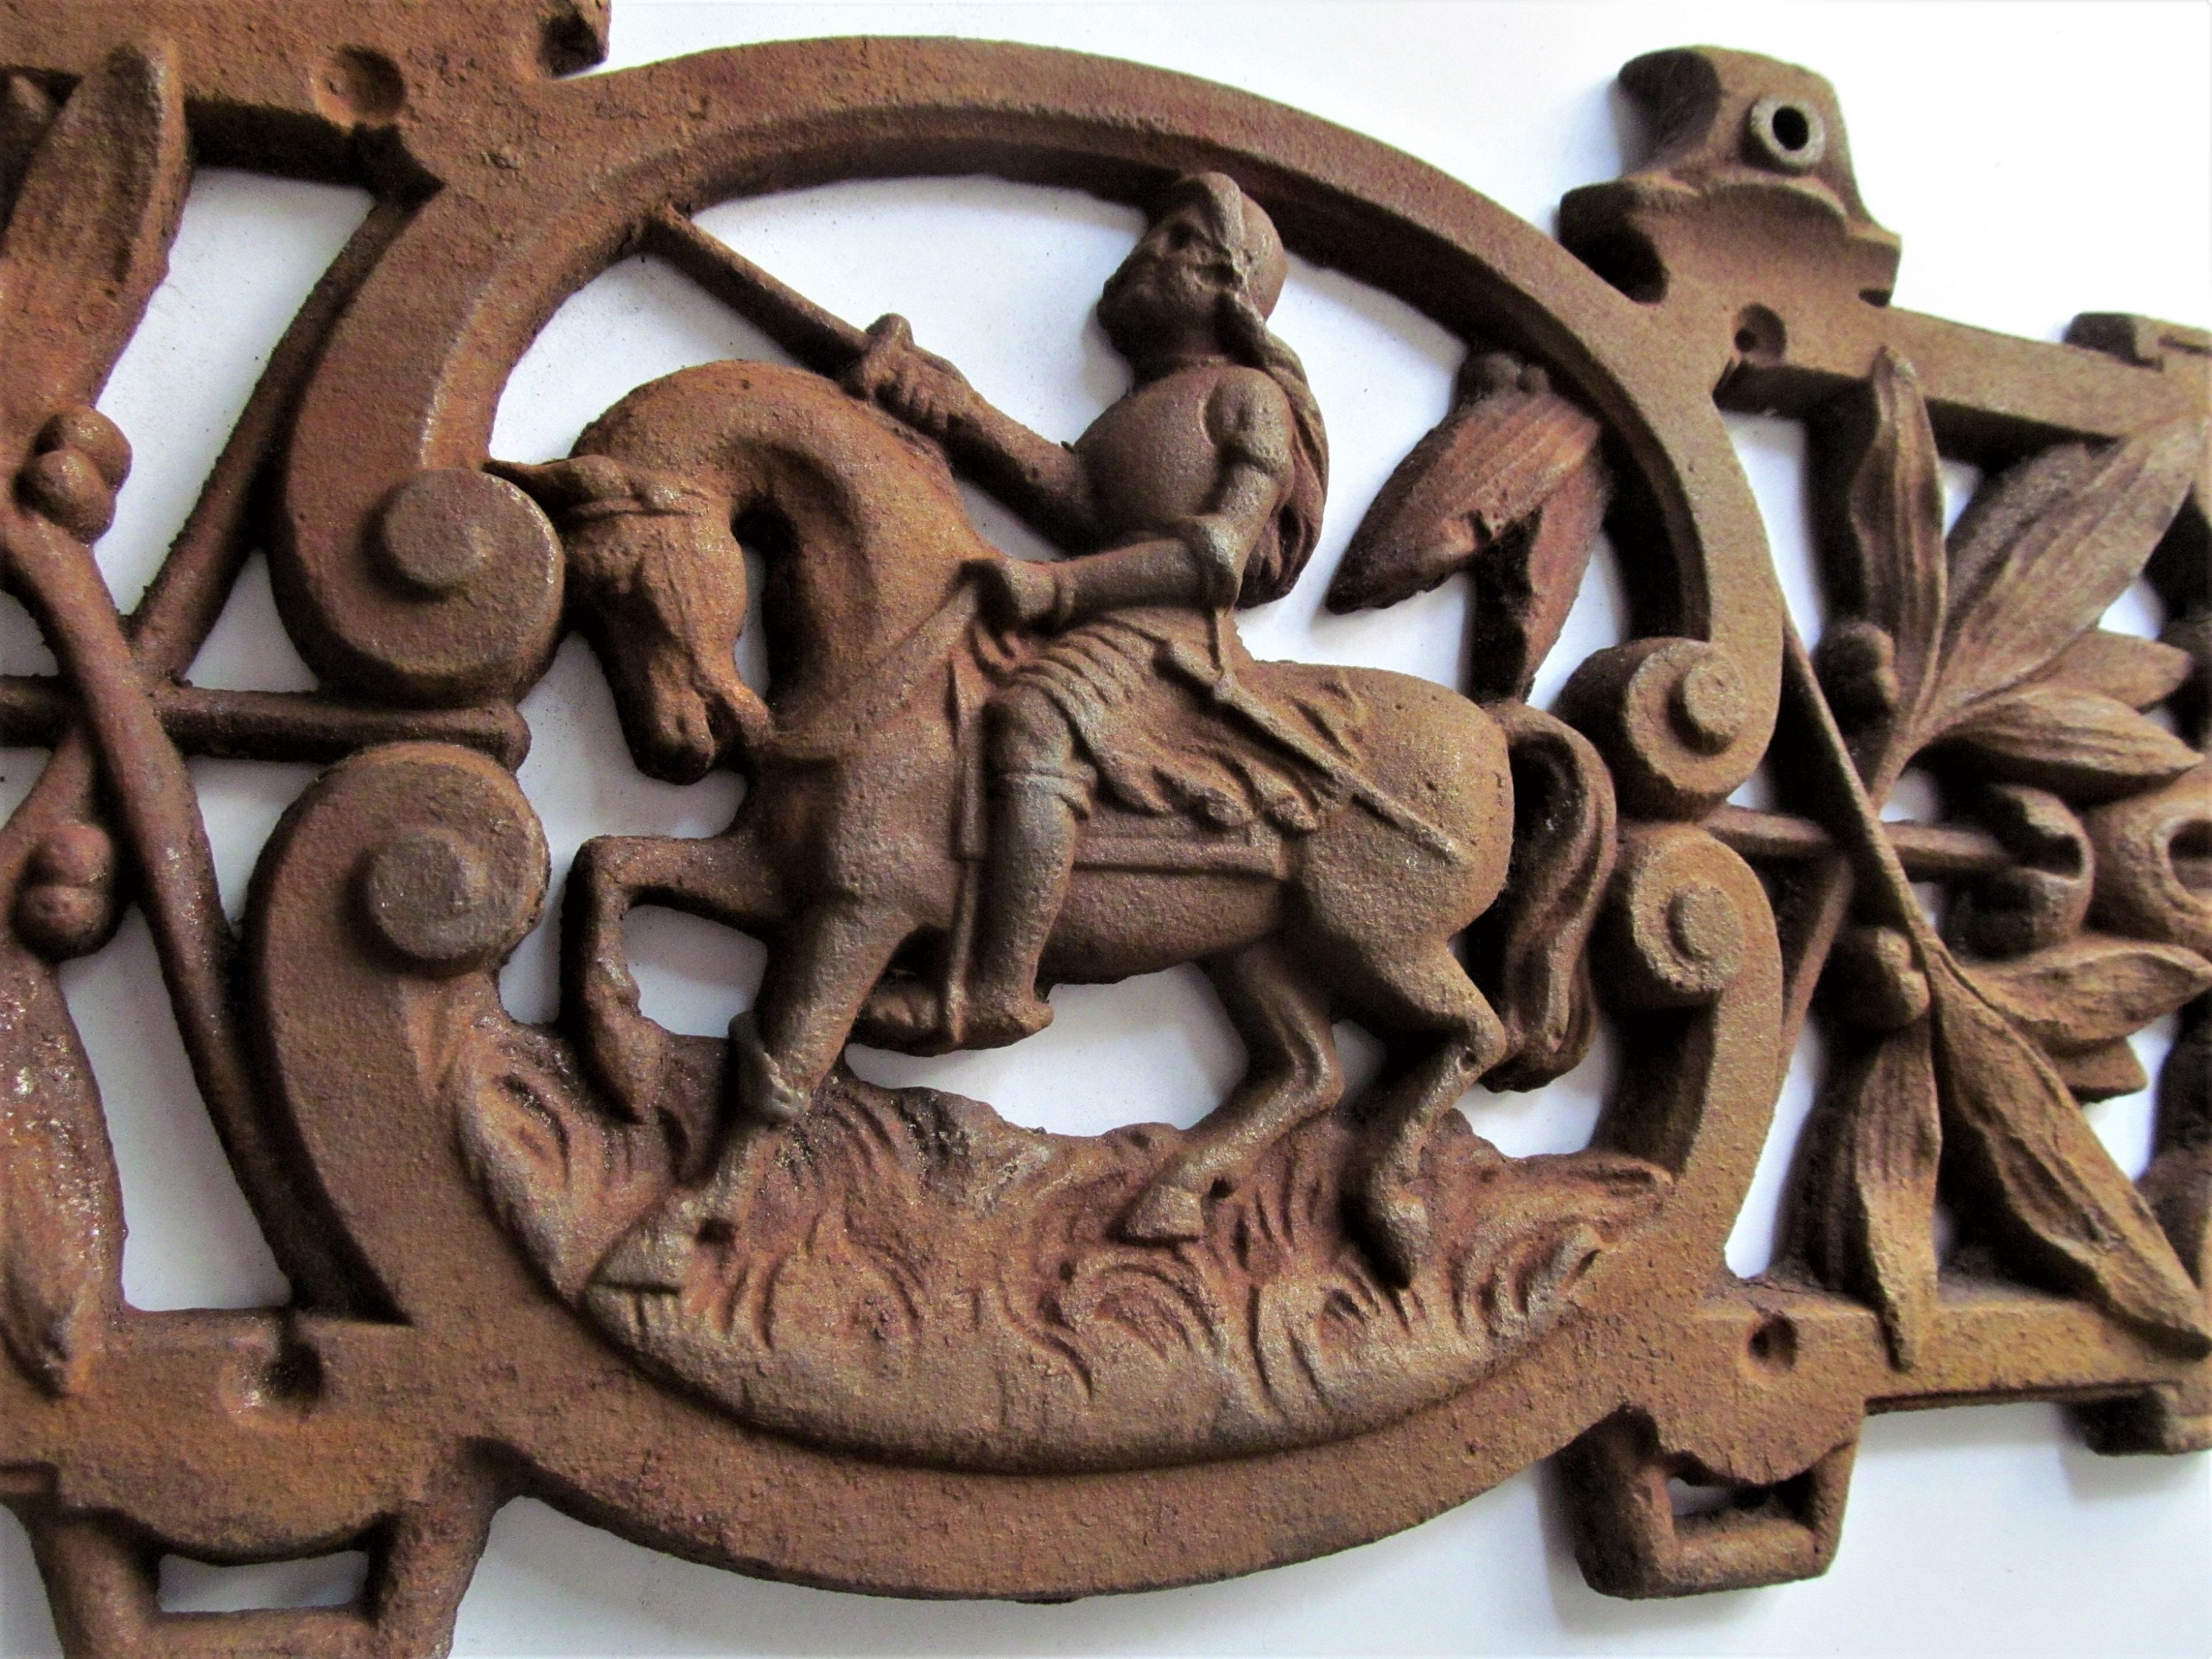 A Superb Antique French Cast Iron Bed Plaque Depicting Joan Of Arc On  Horseback. Medieval Rustic Salvaged Architectural Decoration